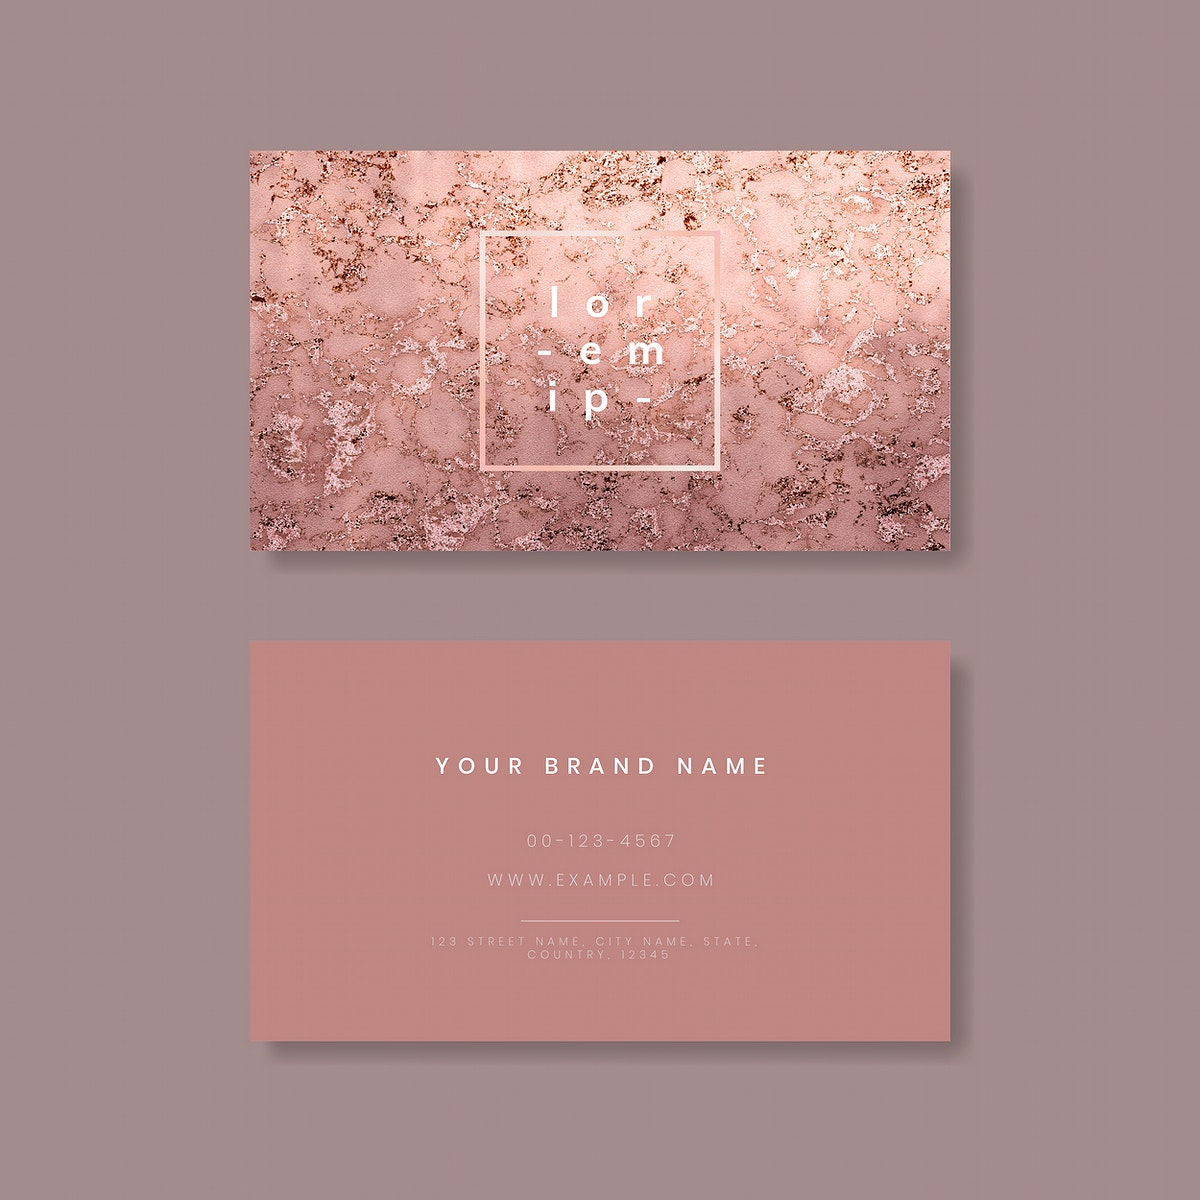 Pink shimmering marble textured business card vector